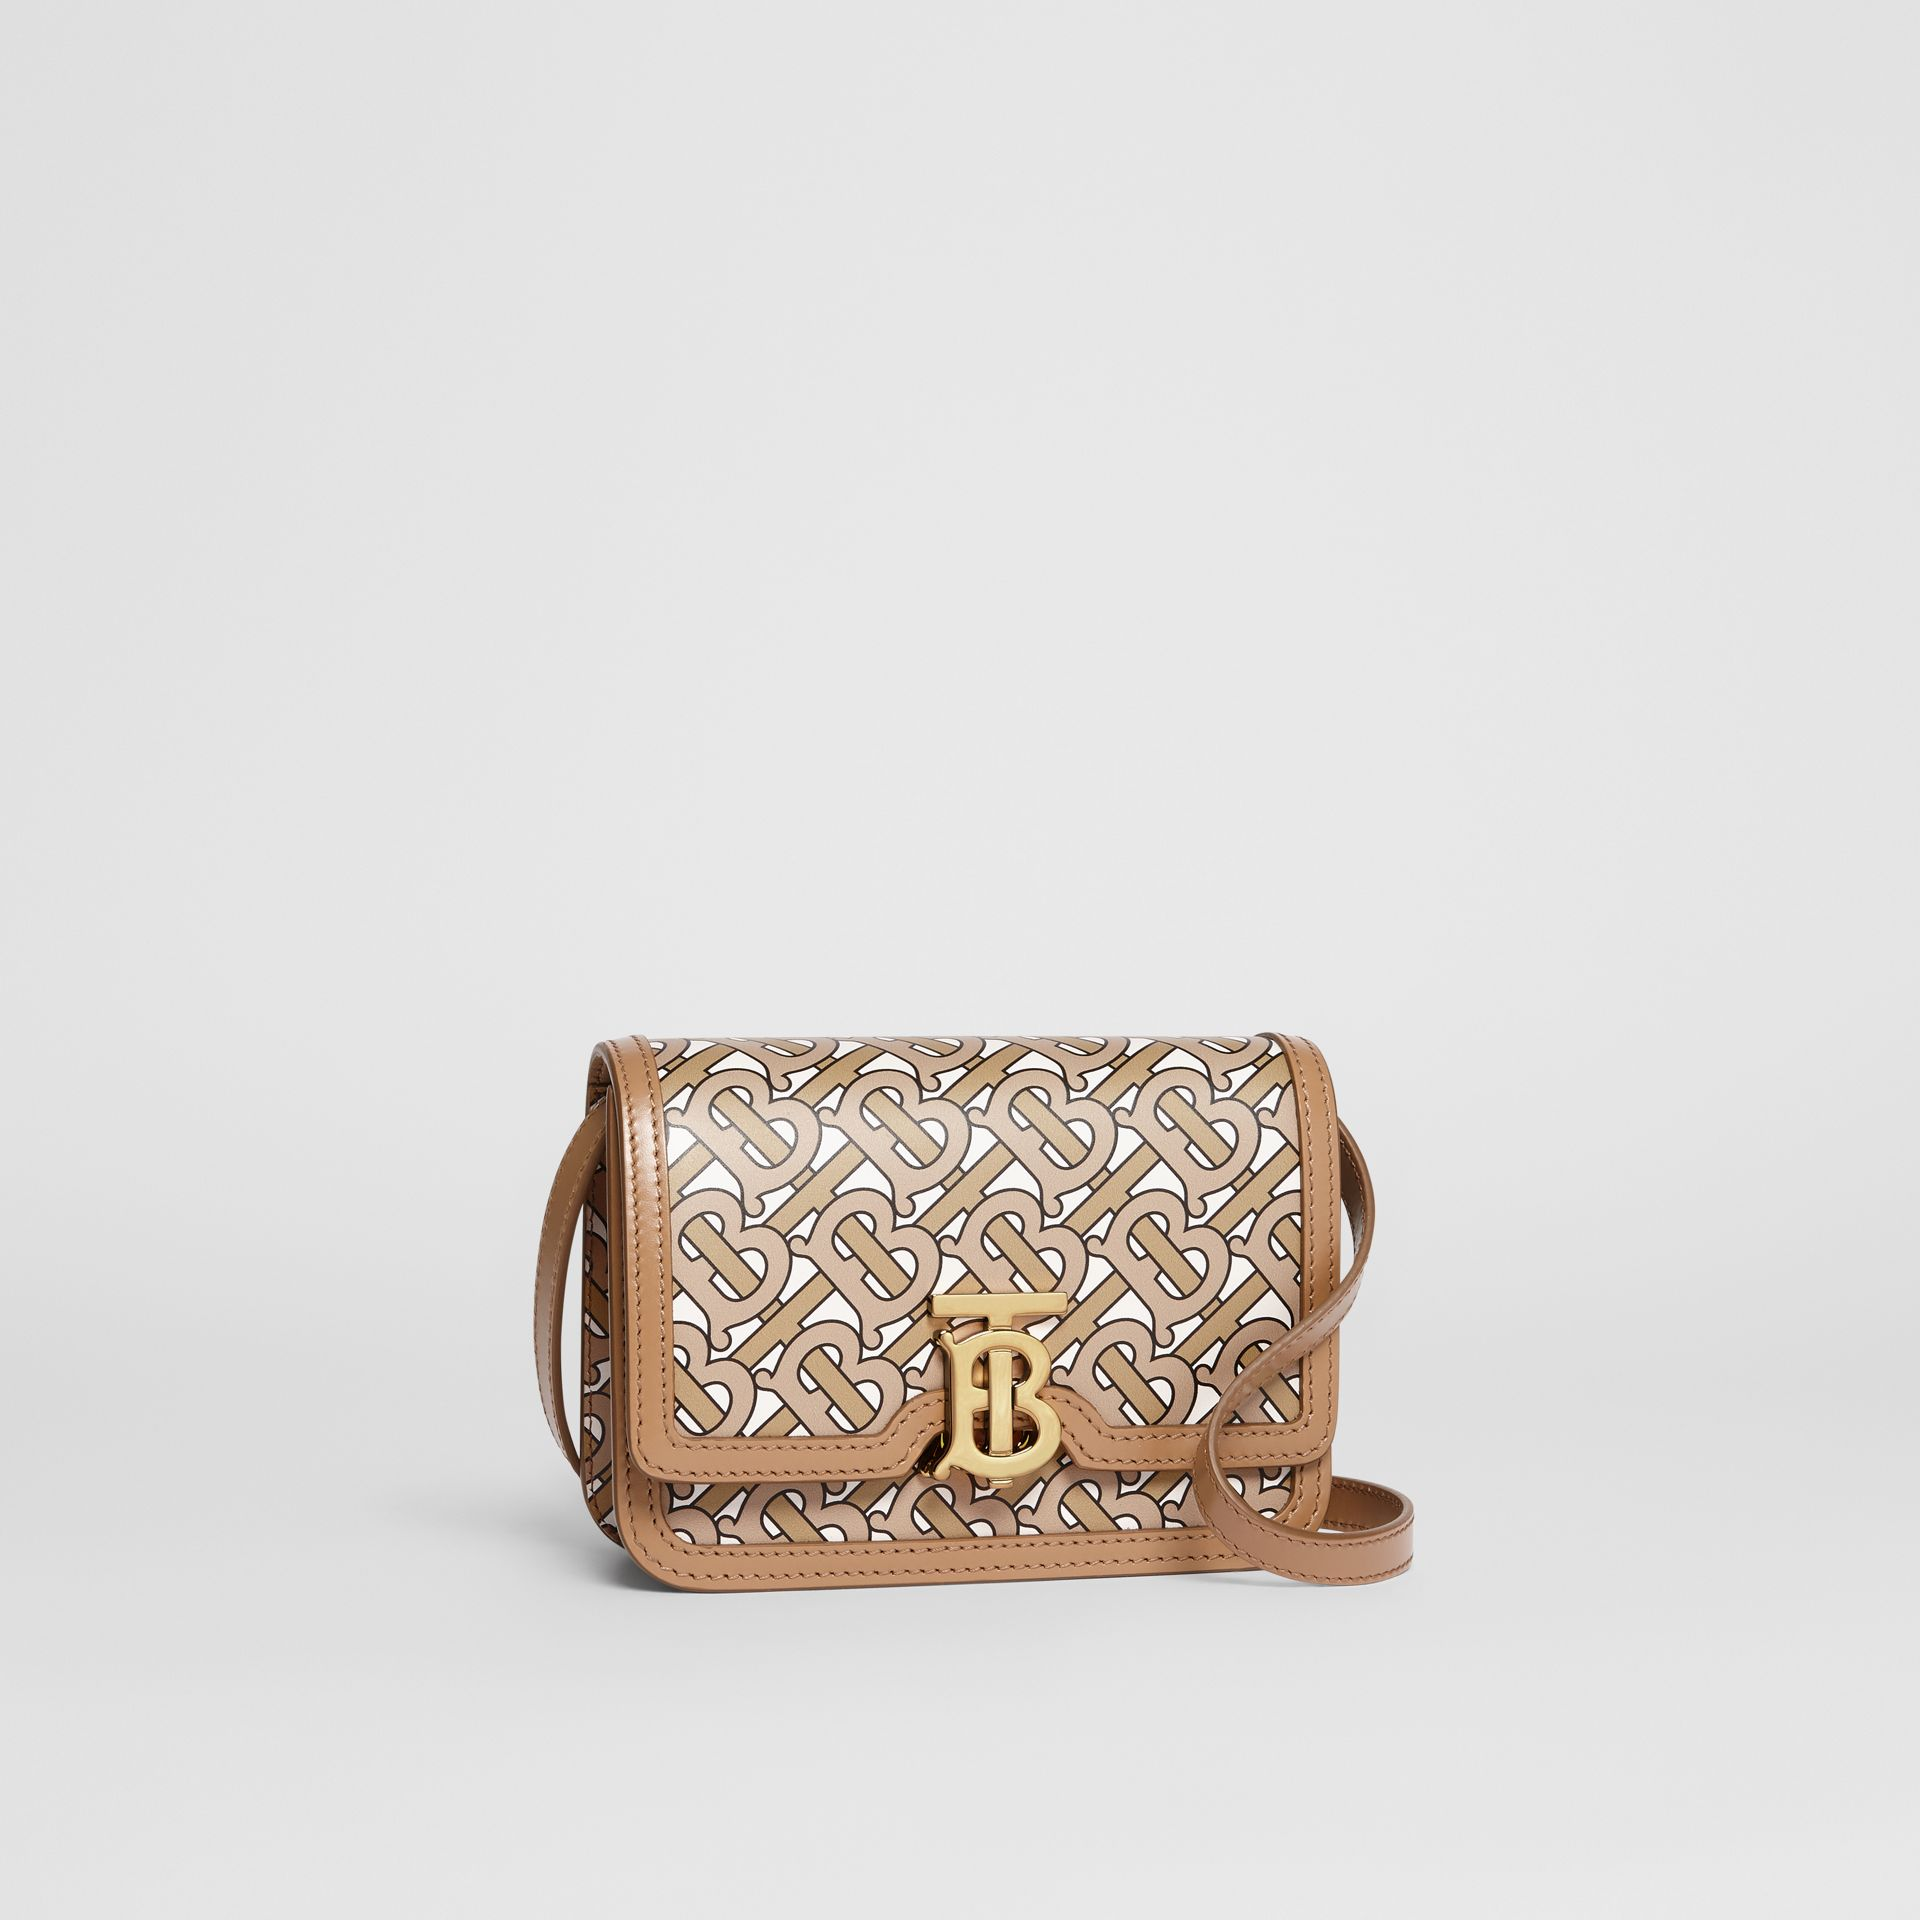 Mini Monogram Print Leather TB Bag in Beige - Women | Burberry - gallery image 6